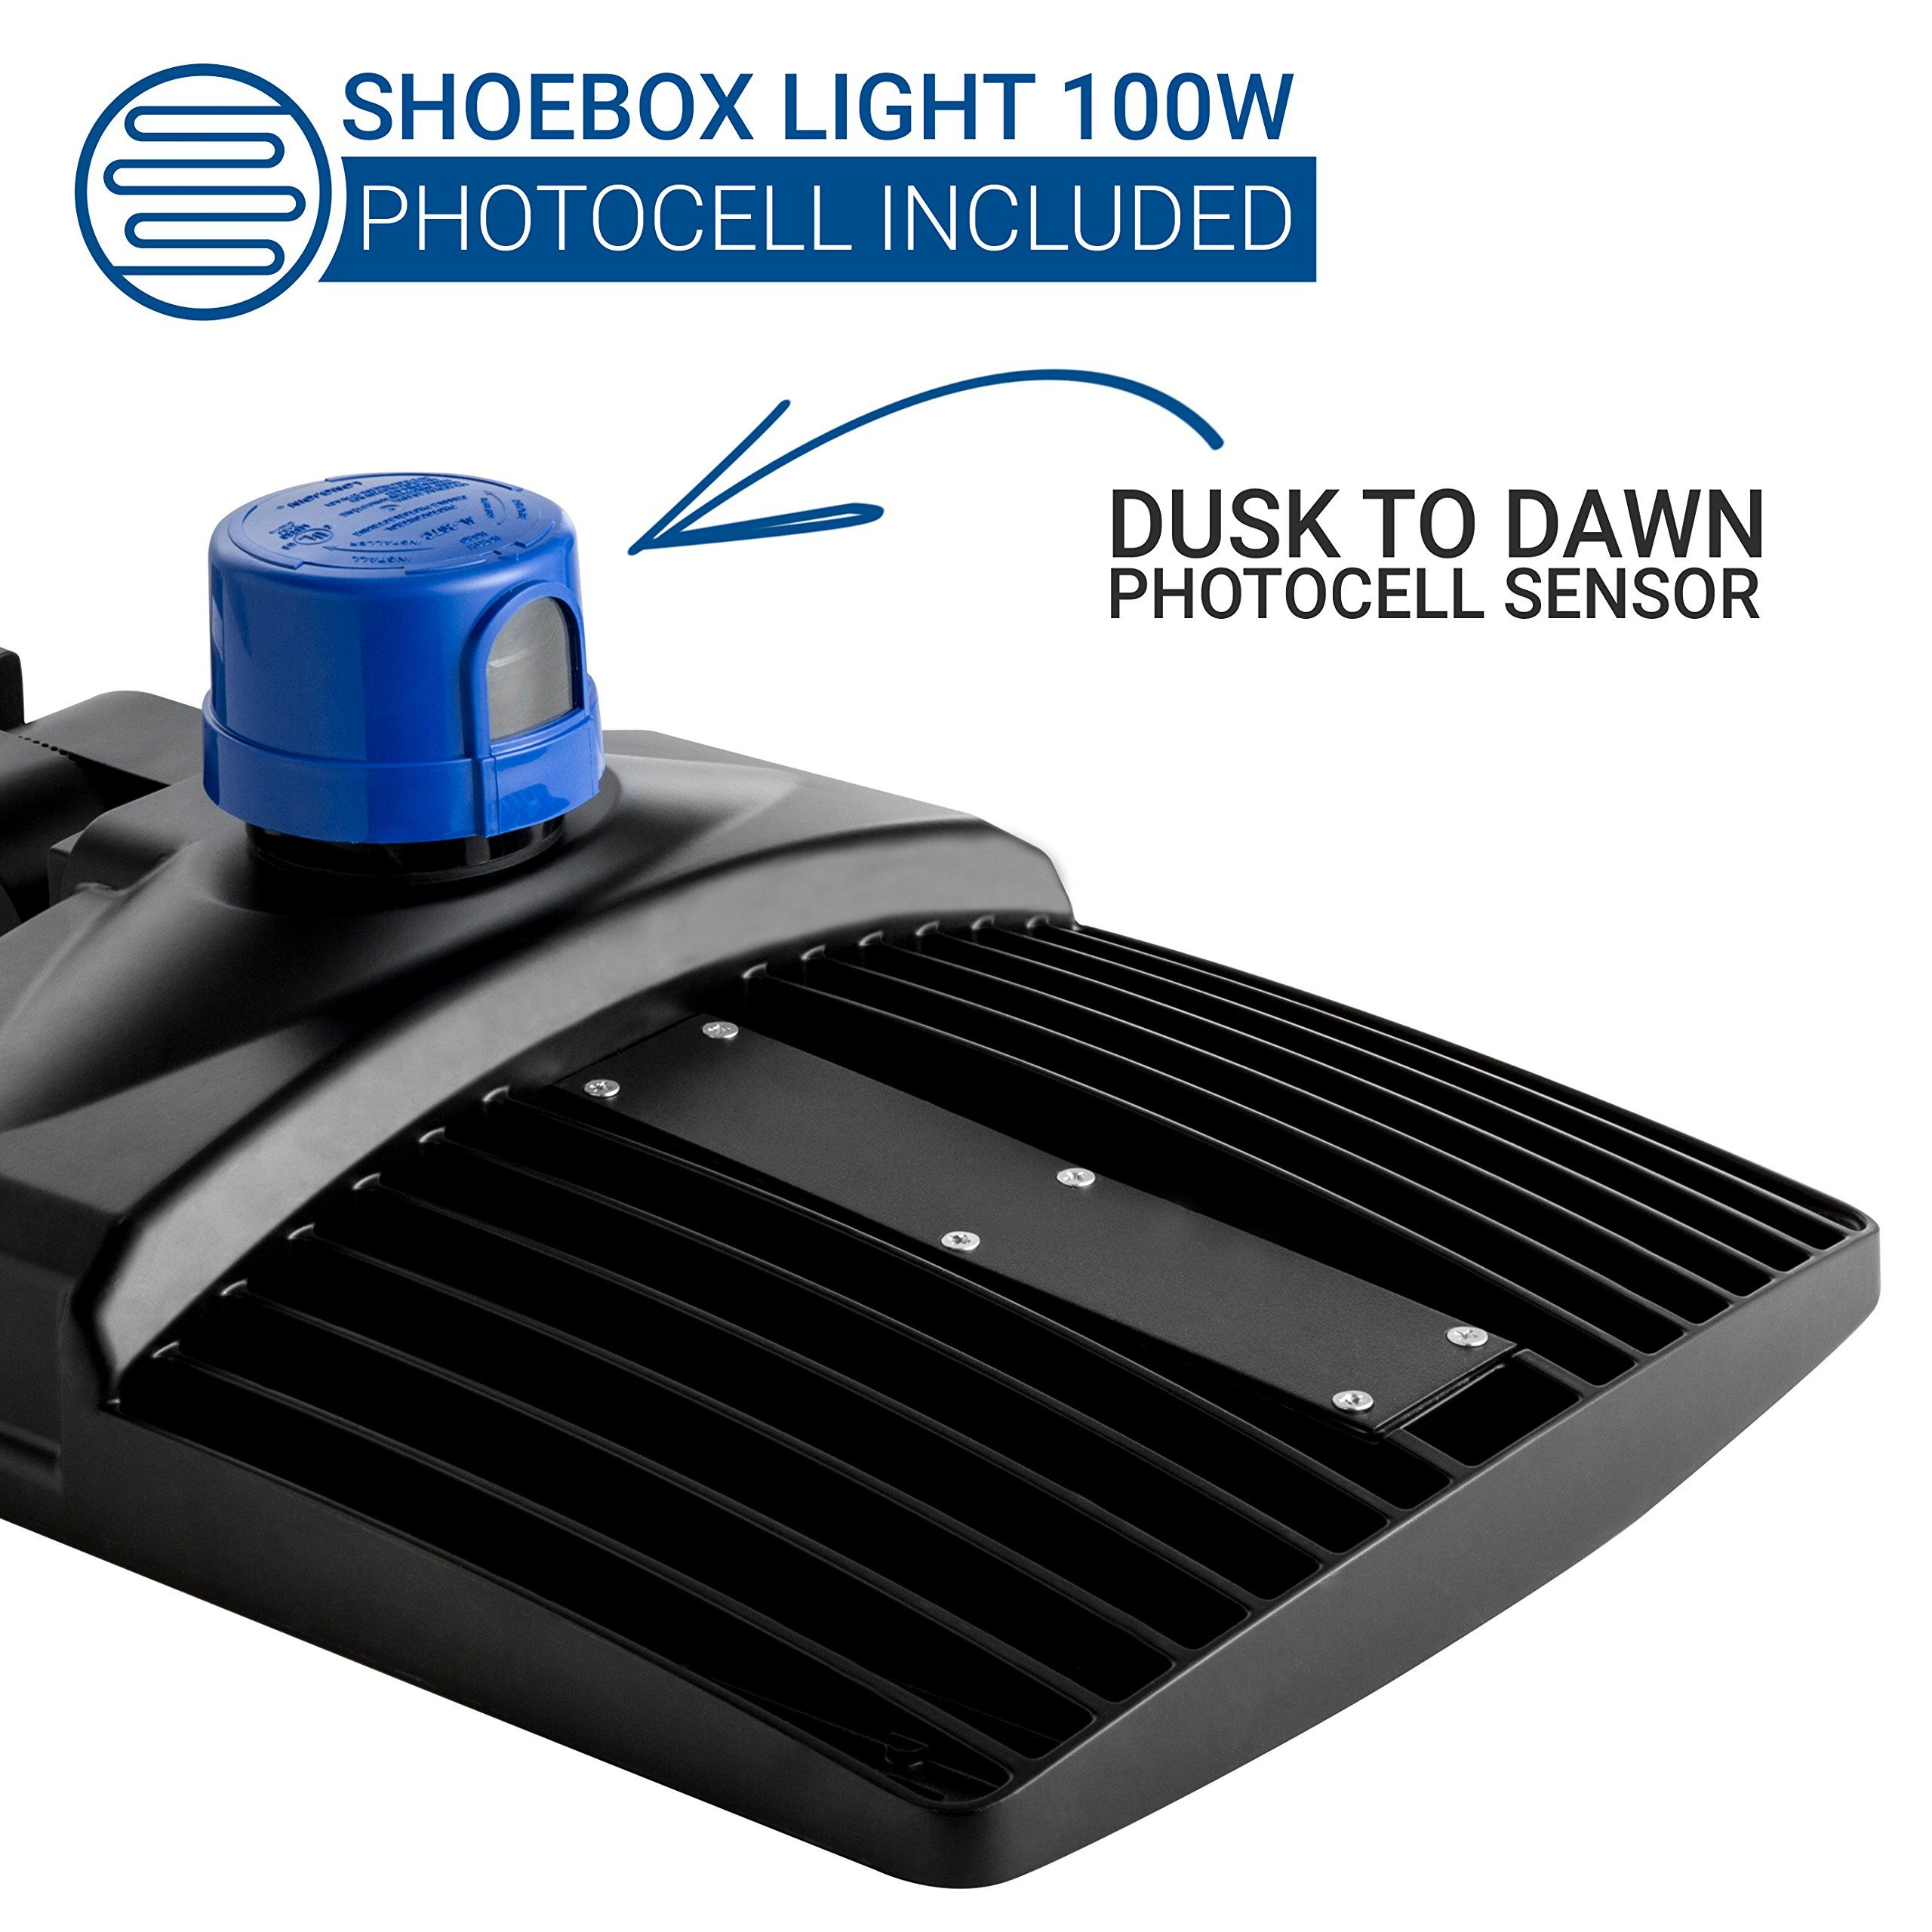 small resolution of hyperikon led shoebox pole light 100w 300w hid hps replacement 5700k 11100 lumen direct wiring